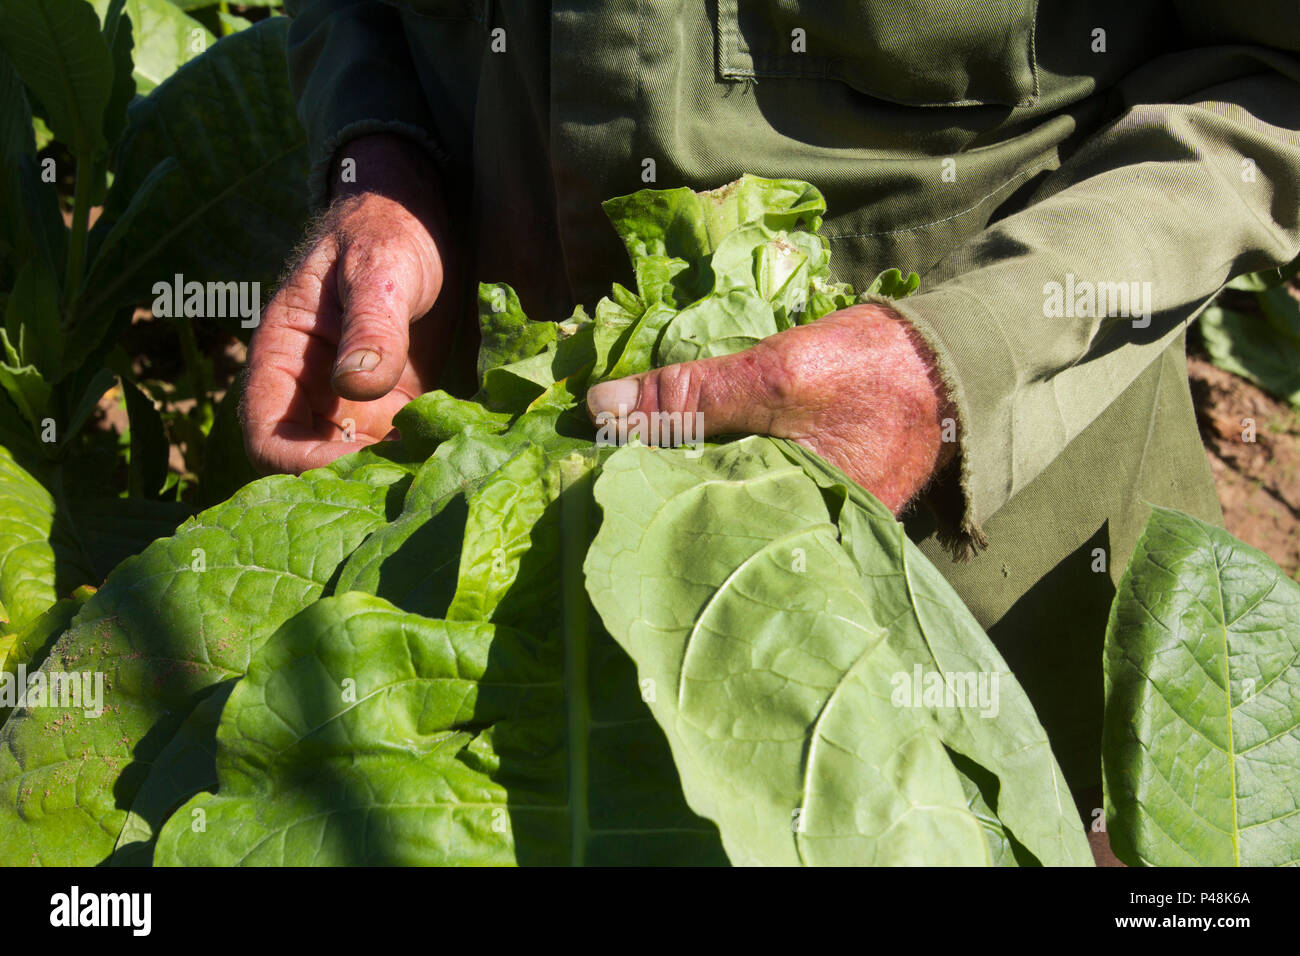 Hard working hands of a farmer in a tobacco plantation in Pinar del Río, Cuba, sustaining tobacco leaves just harvested. - Stock Image